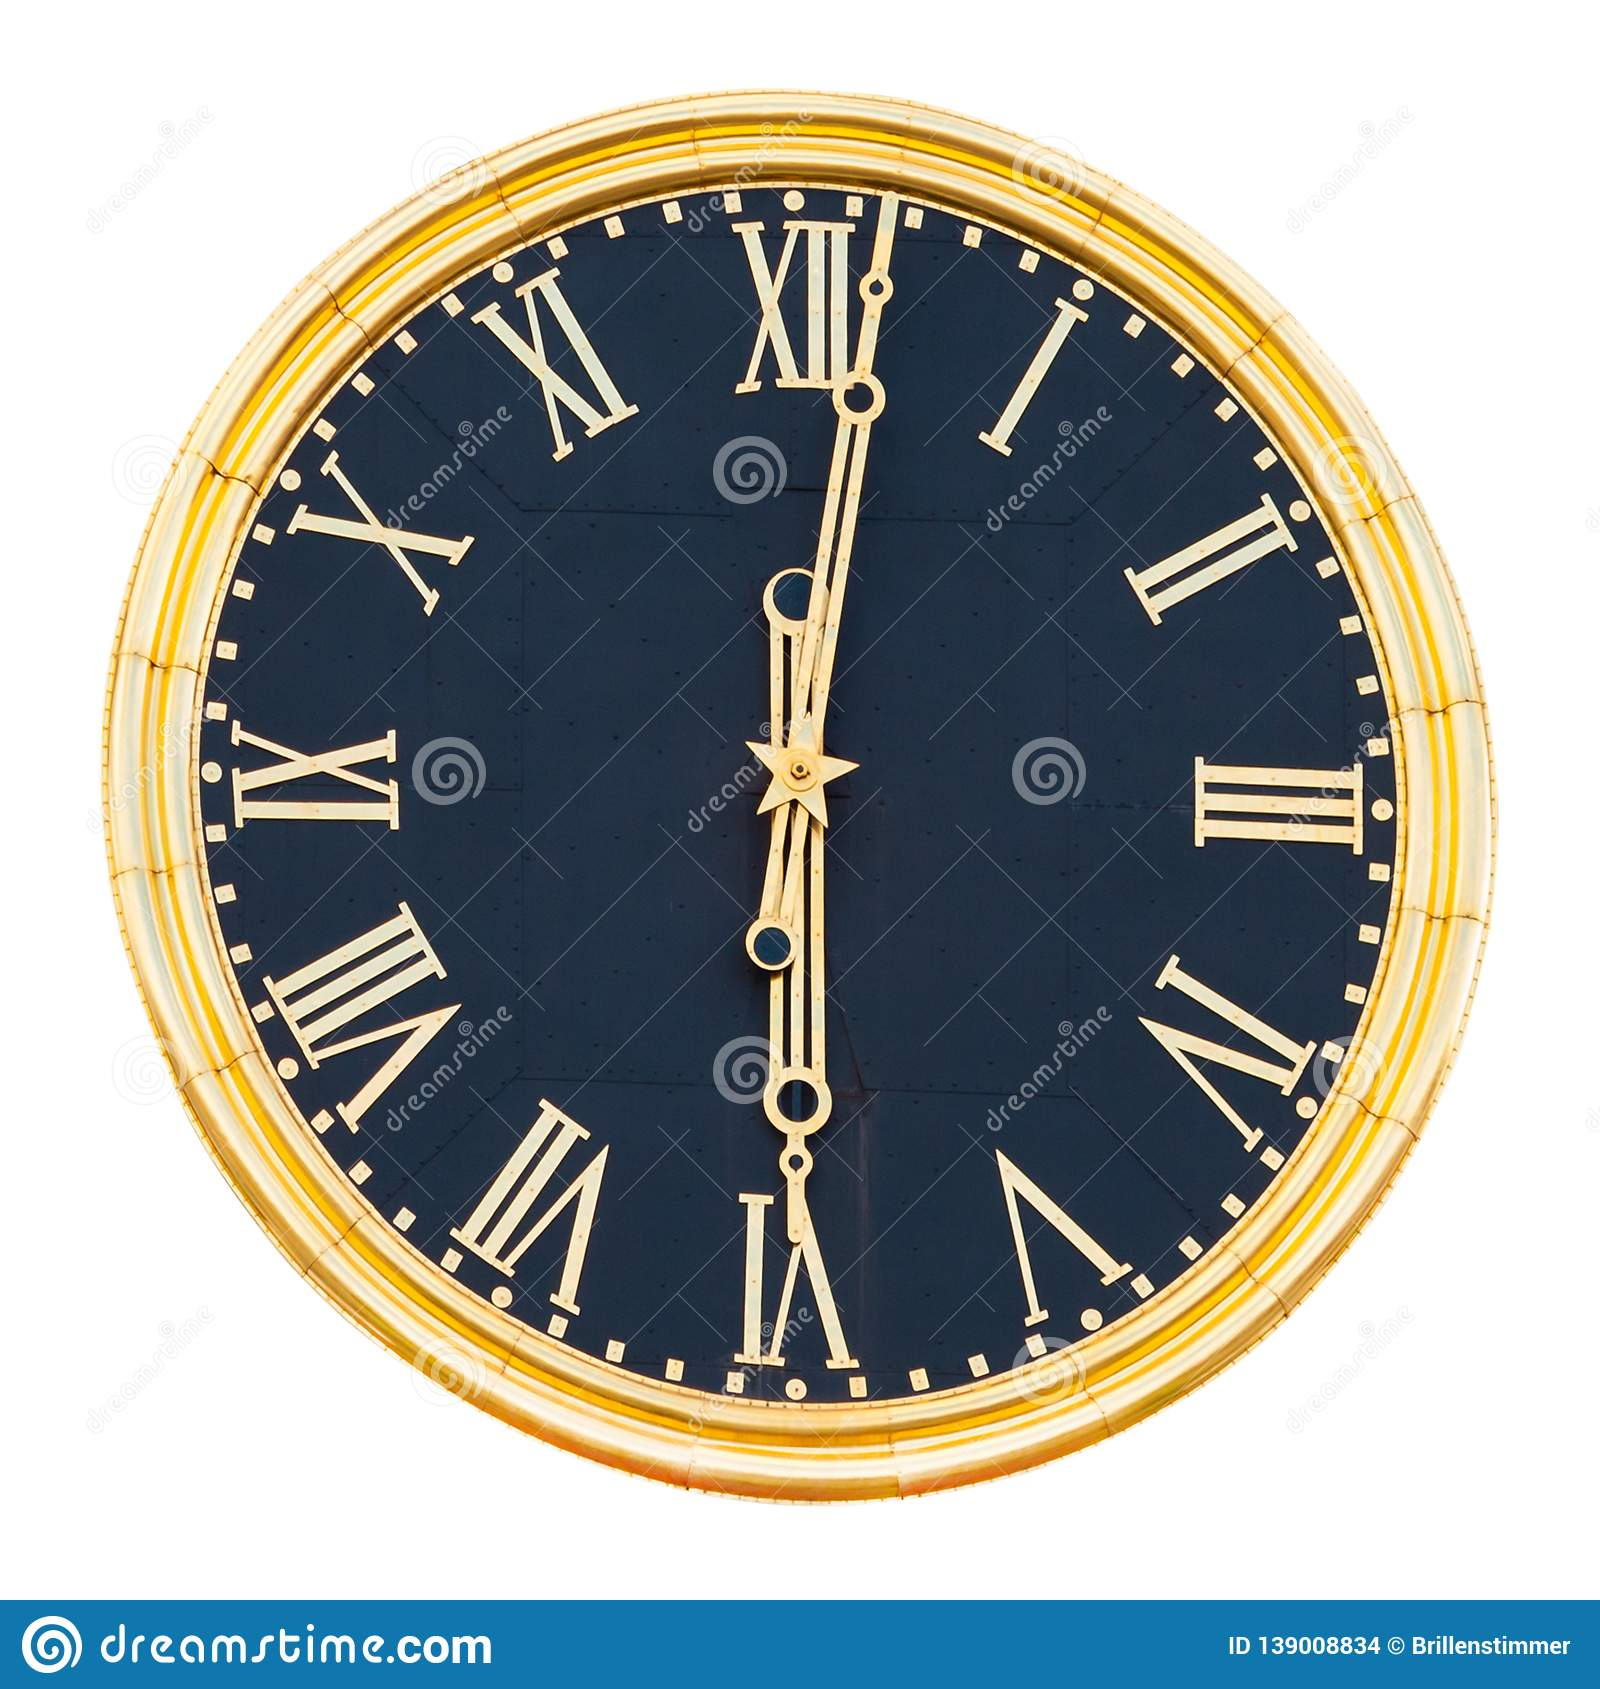 Round clock with gilded dial and hands, isolated on a white background